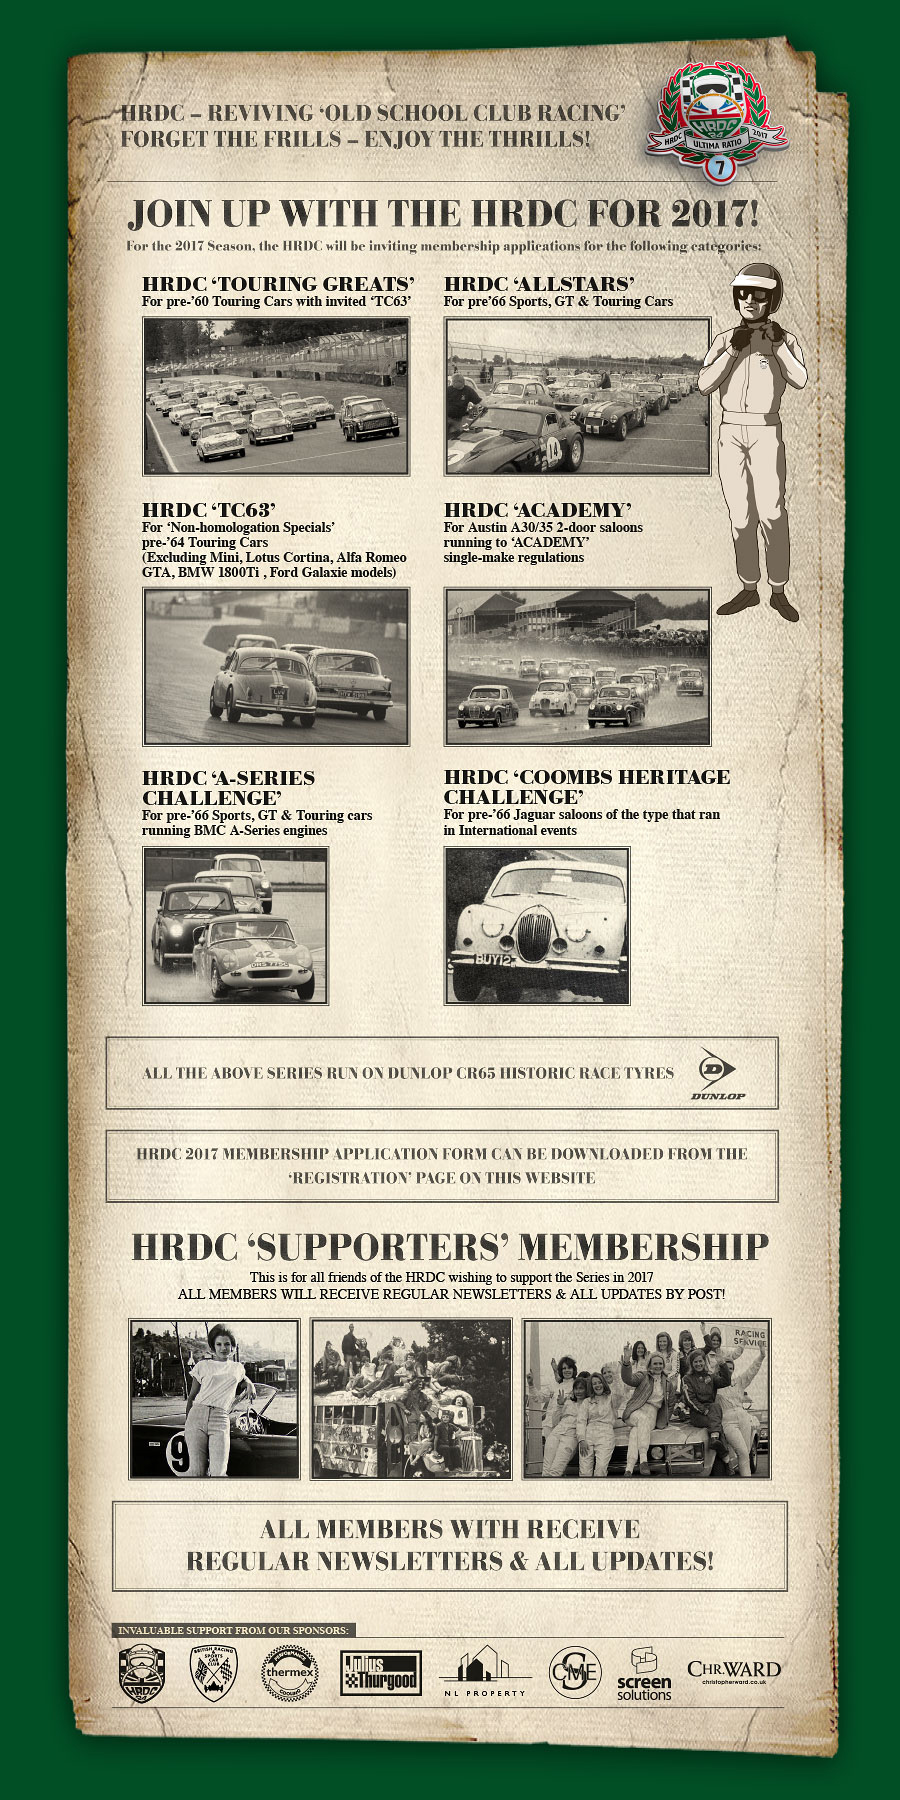 Join up with HRDC for 2017